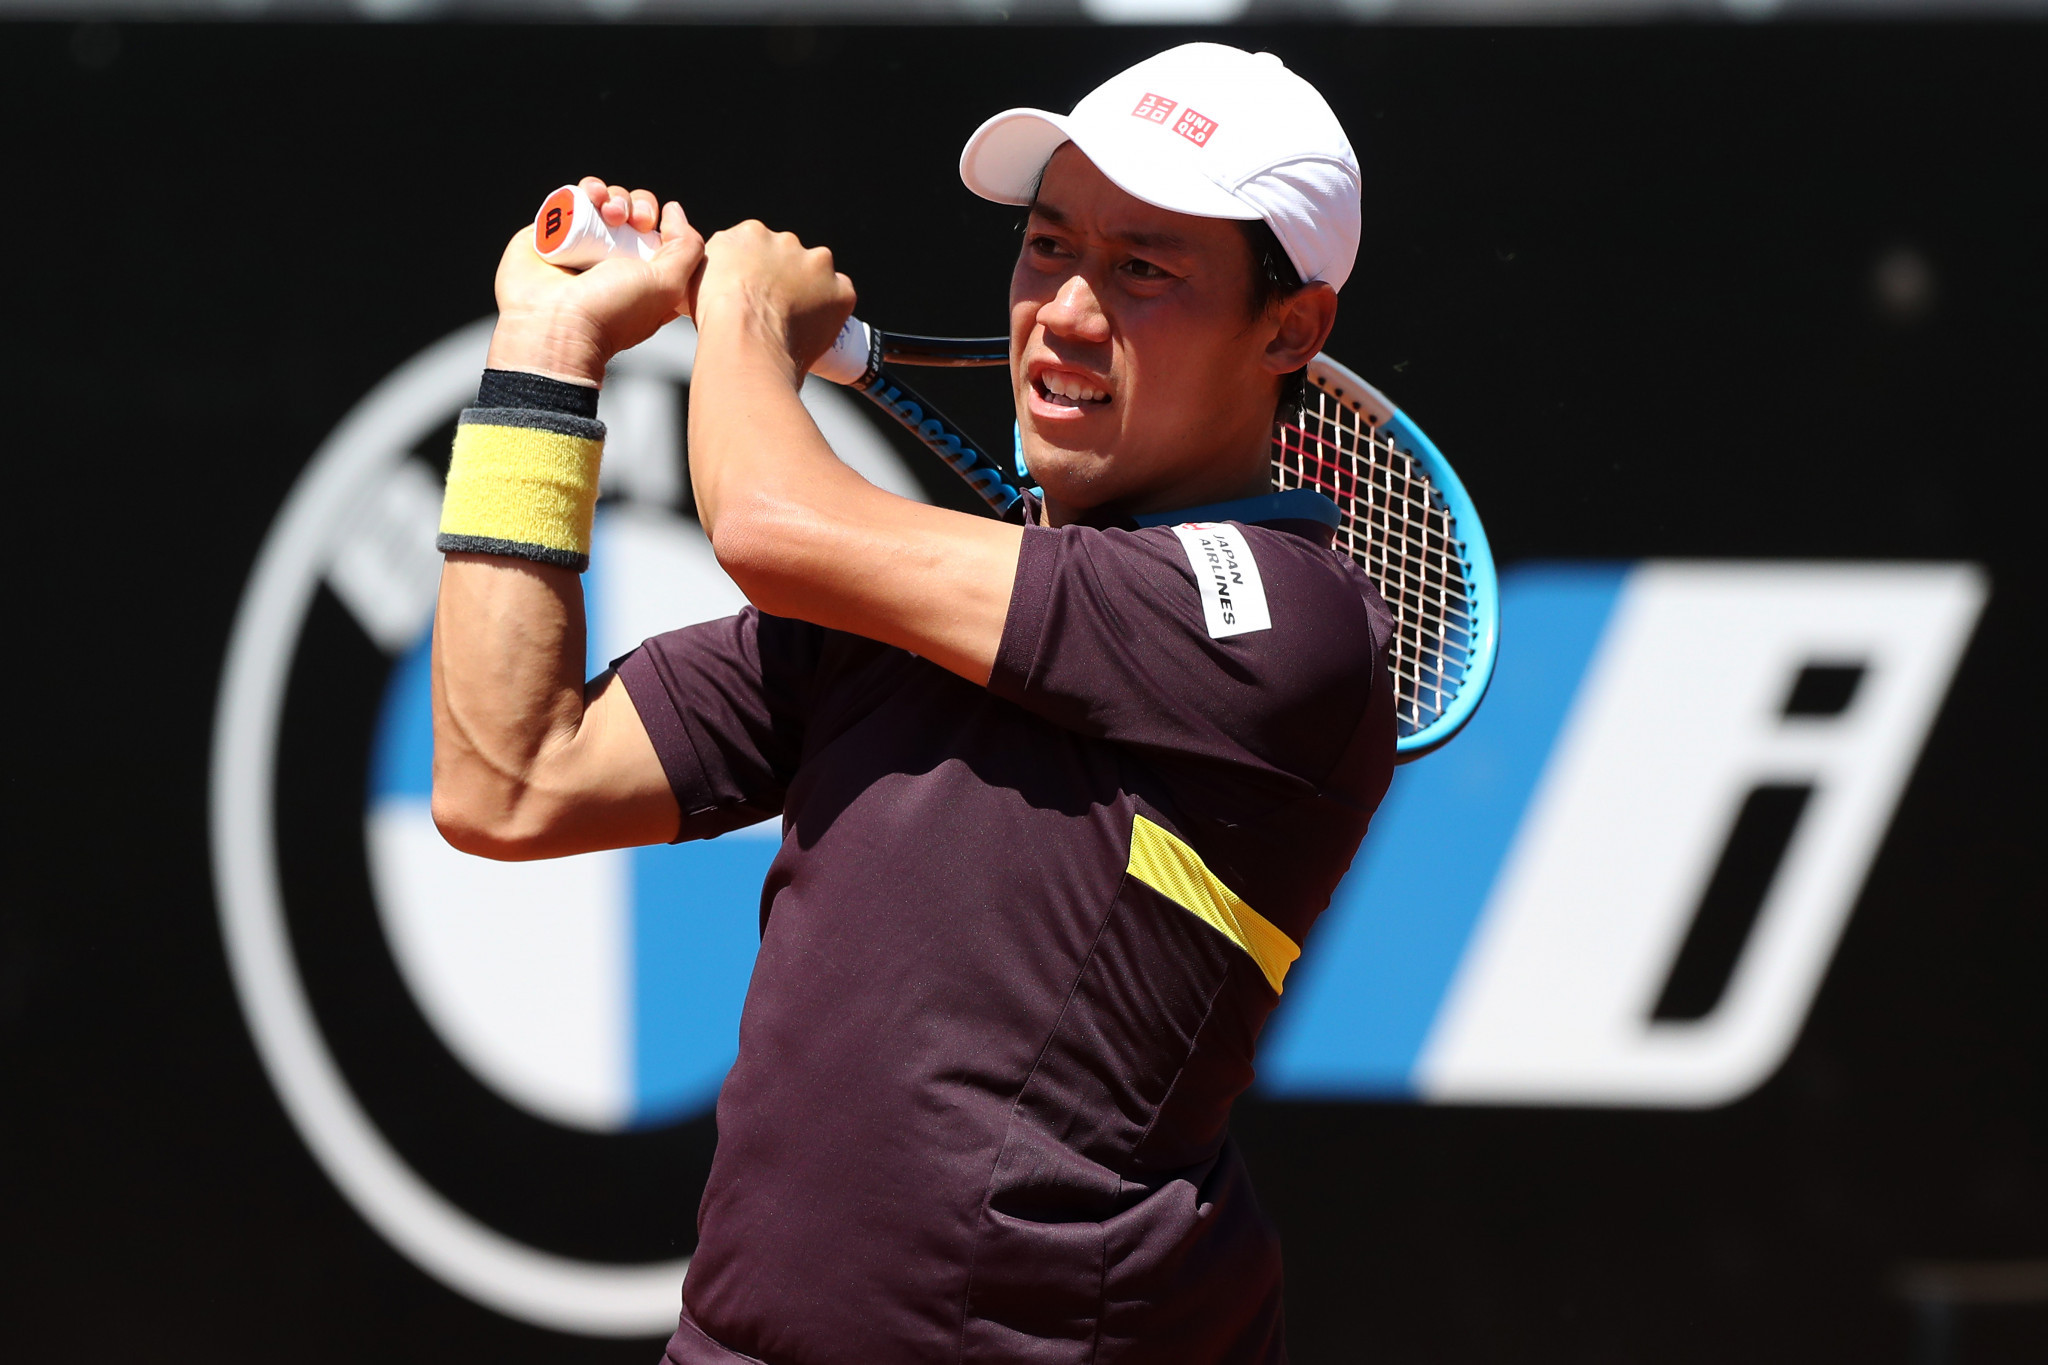 Kei Nishikori has expressed concerns over holding Tokyo 2020 ©Getty Images